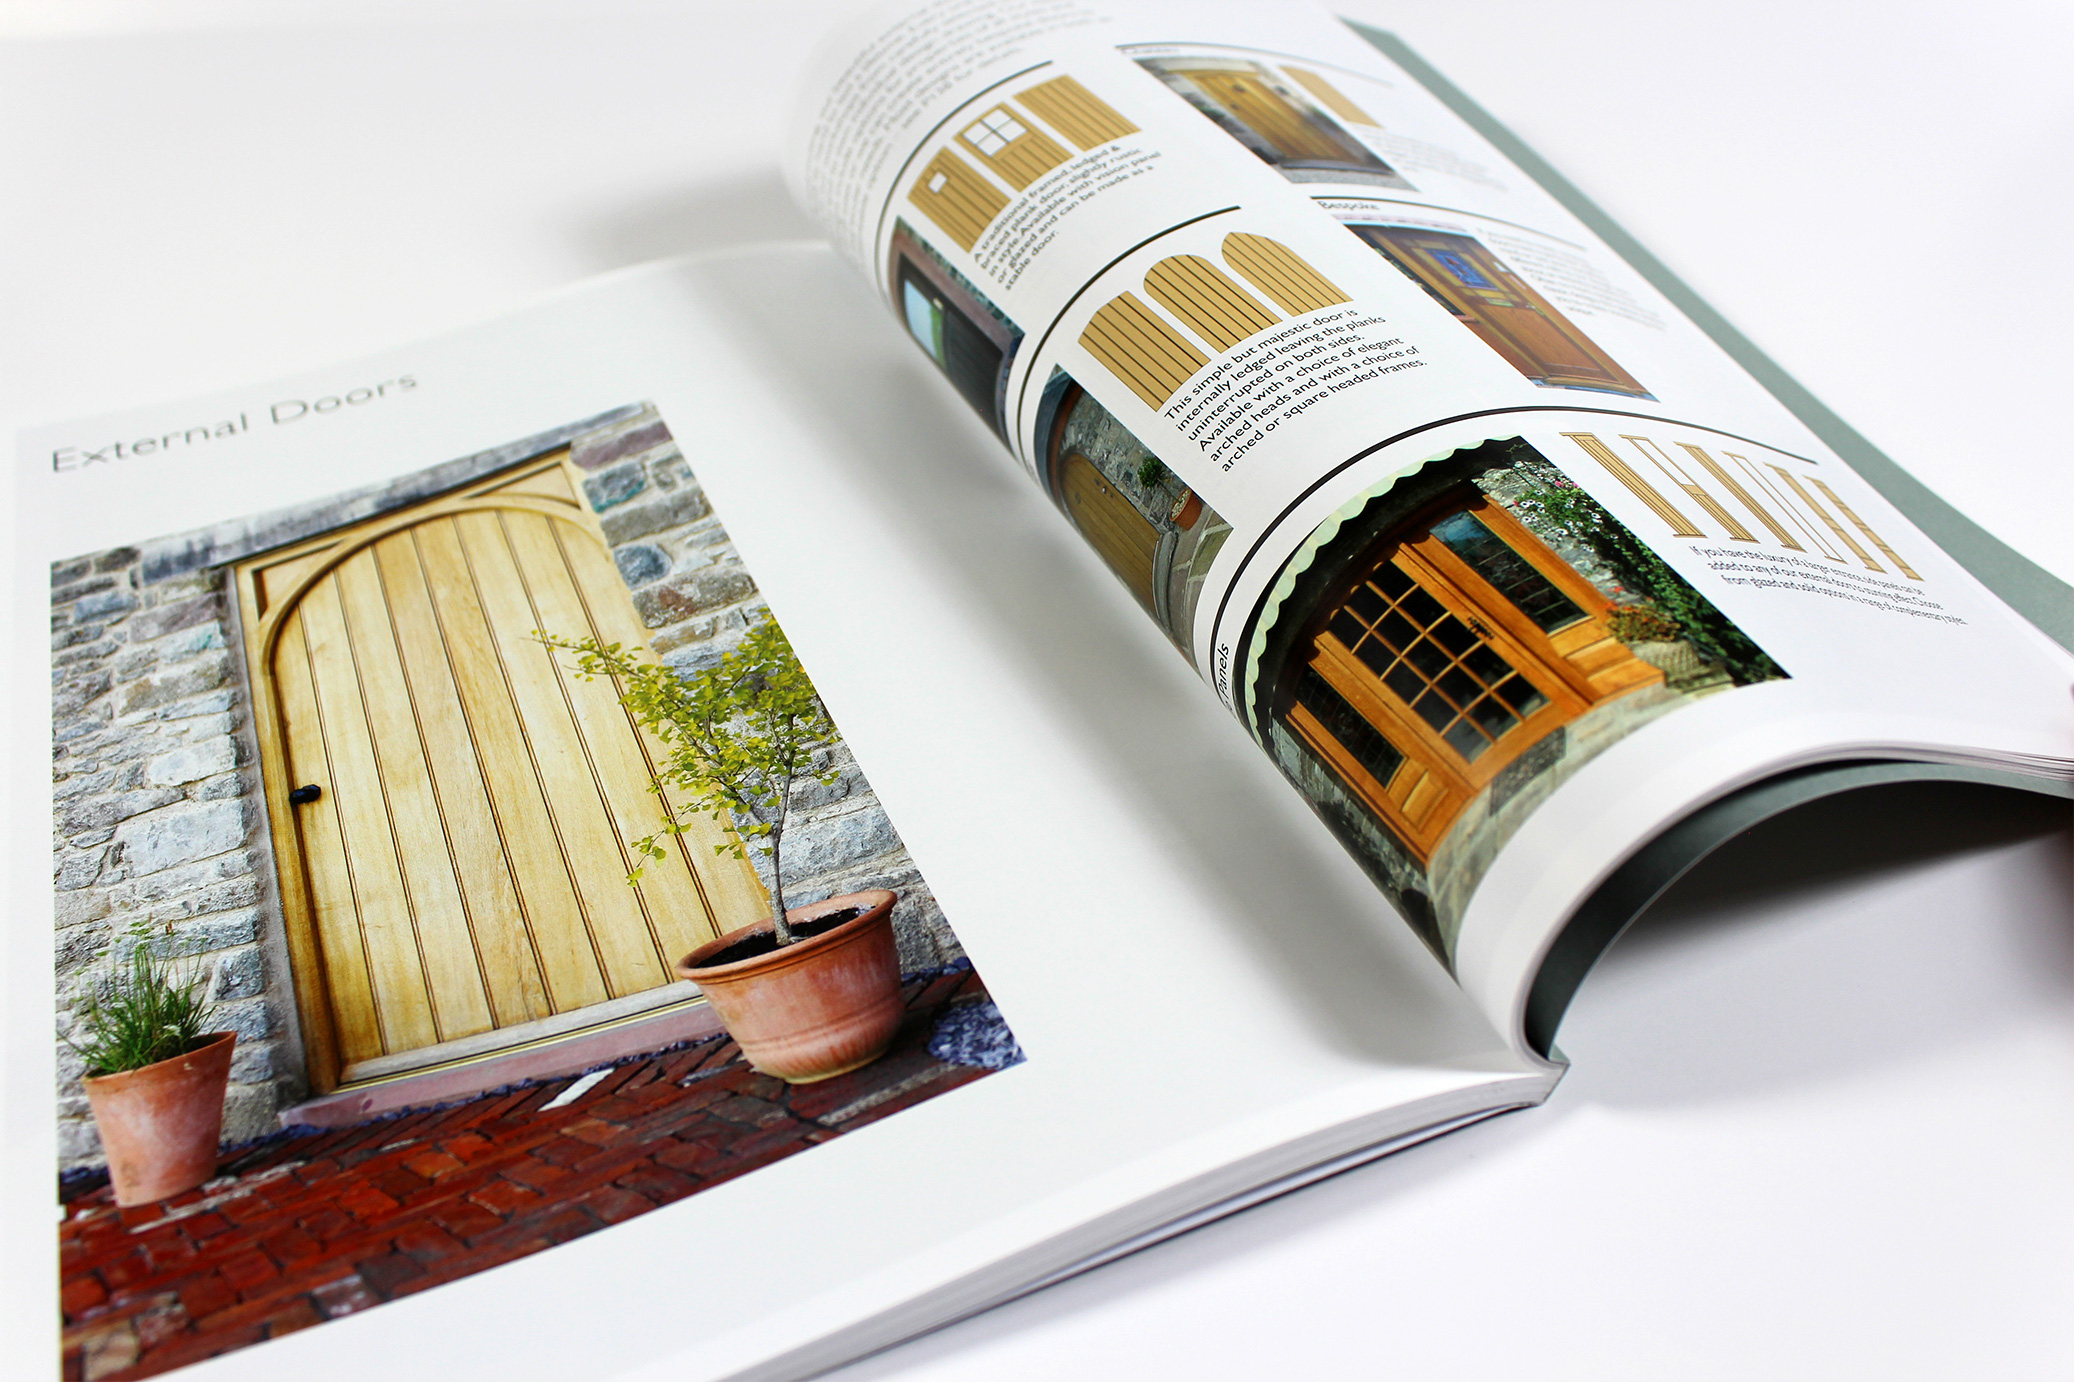 Effect of Perfect binding on page layout